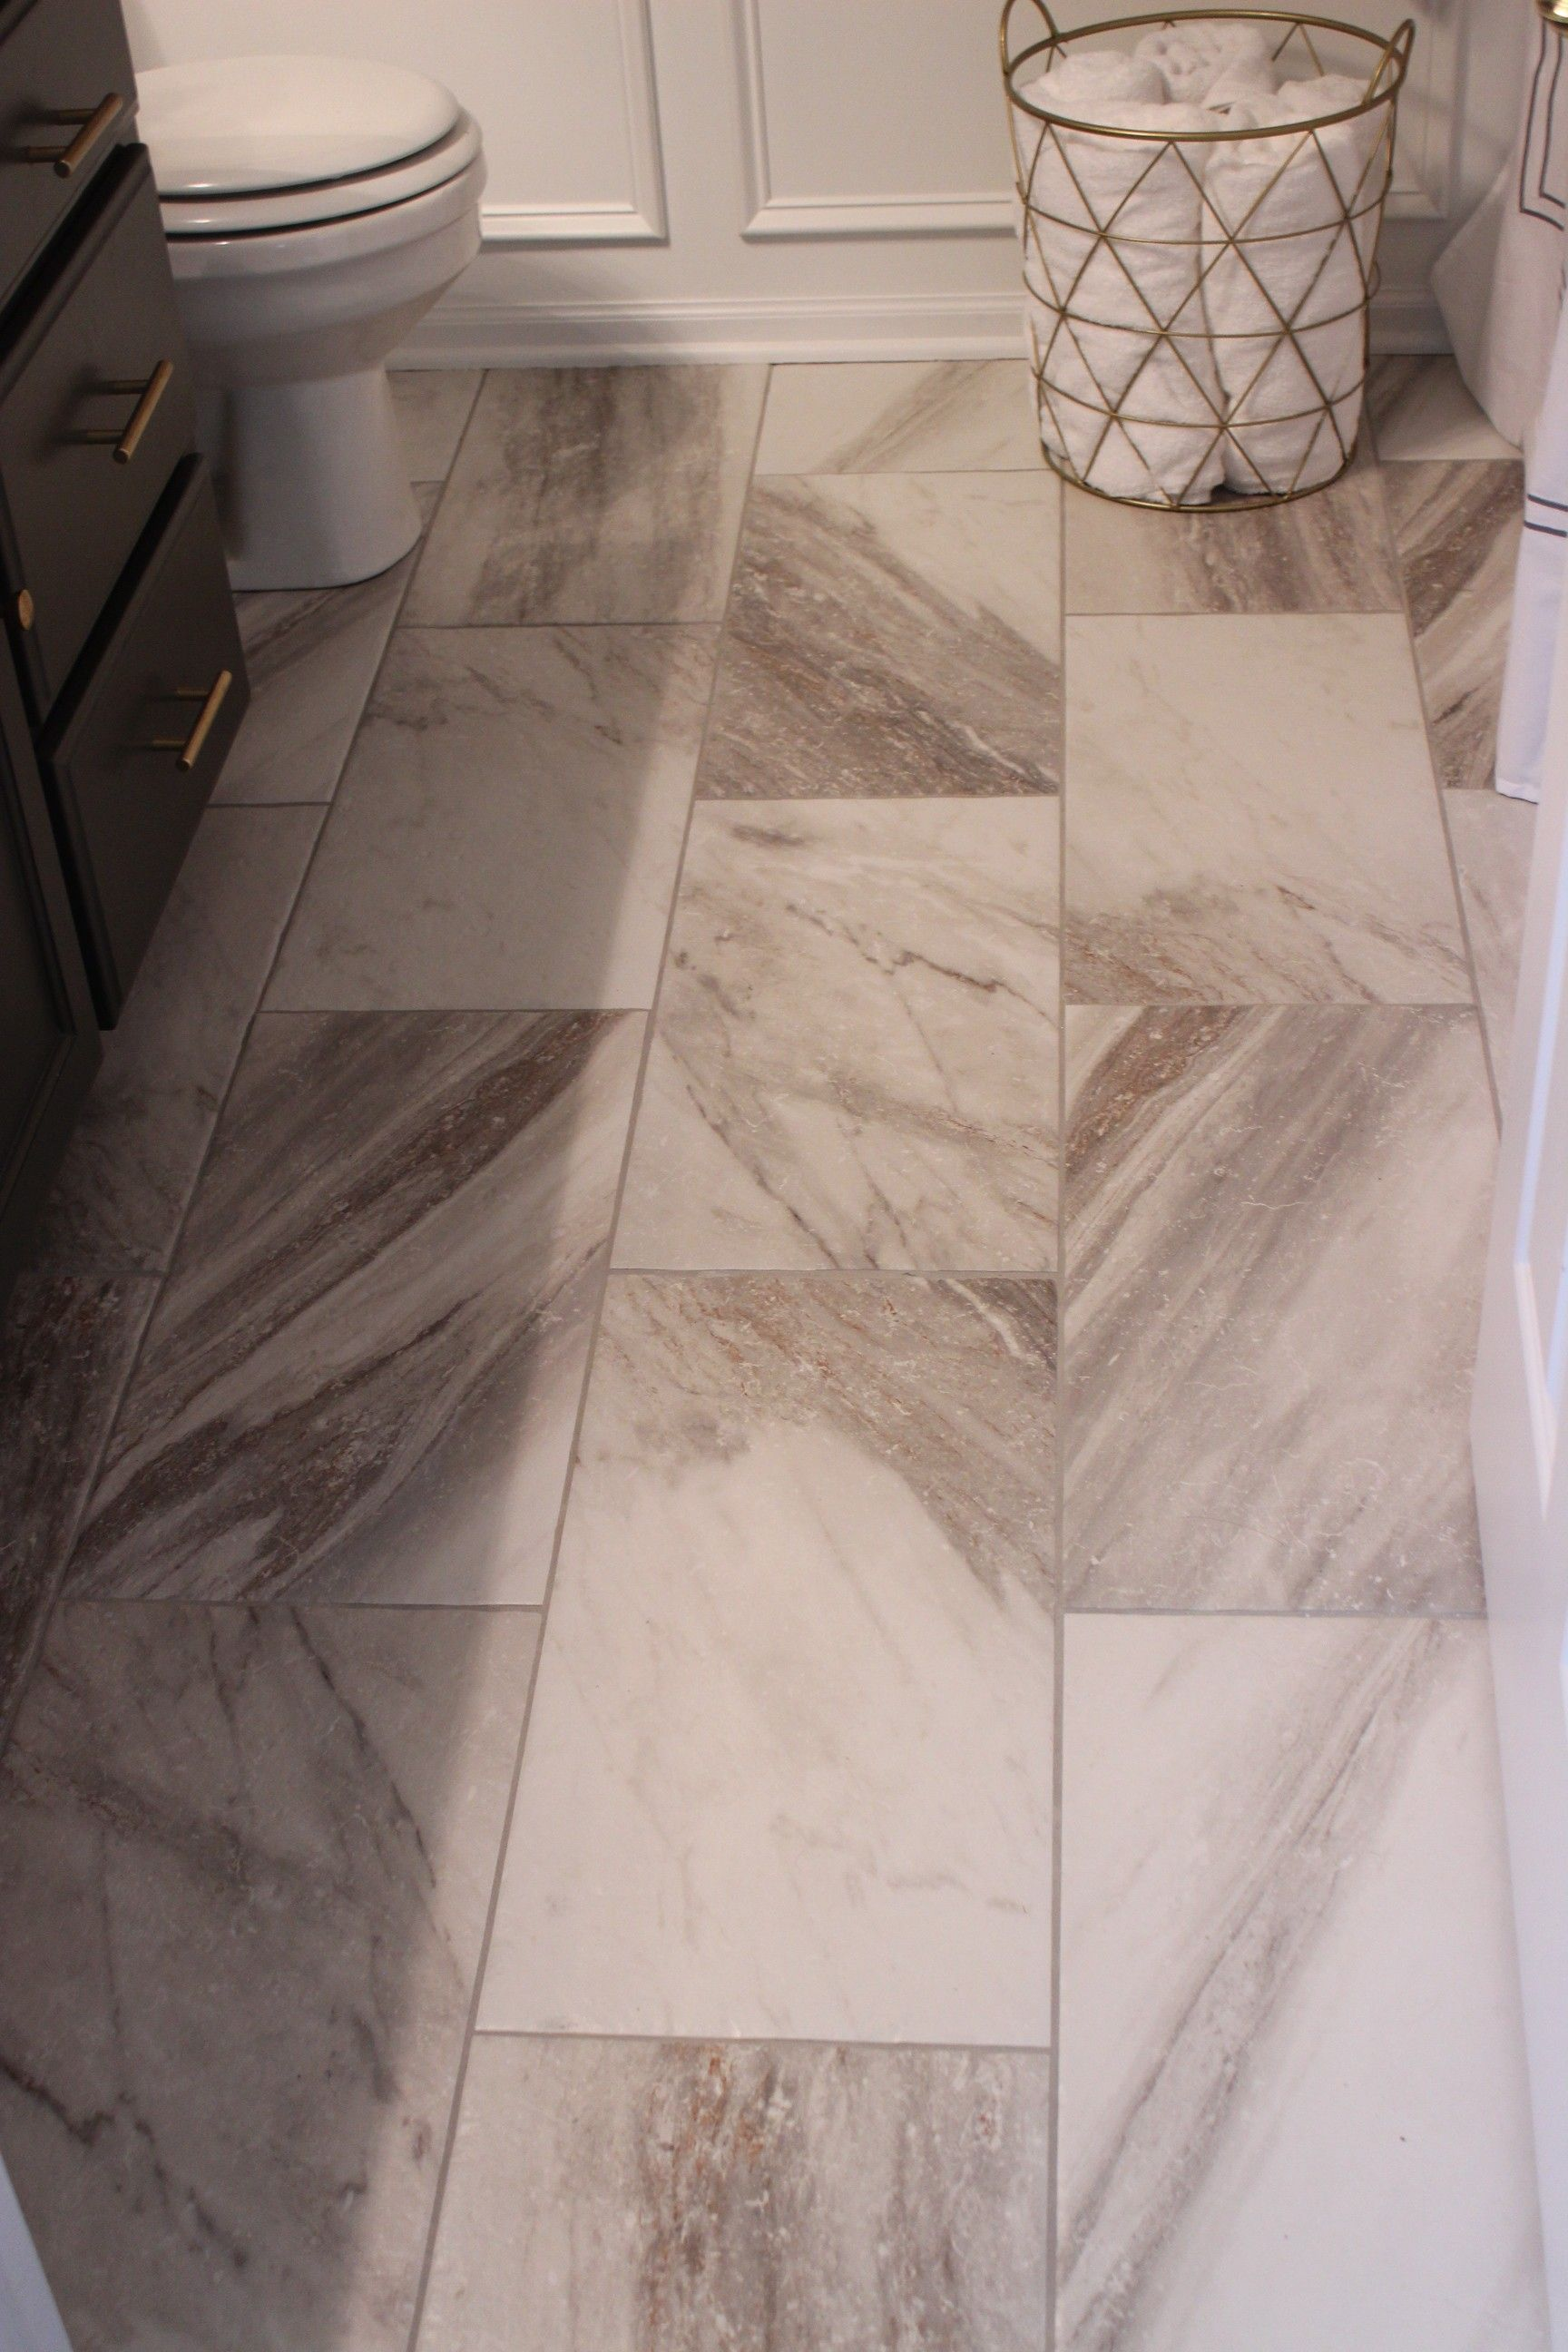 Sovereign stone pearl porcelain tile in 12 x 24 at lowes bathroom re do ideas pinterest - Lowes floor tiles porcelain ...